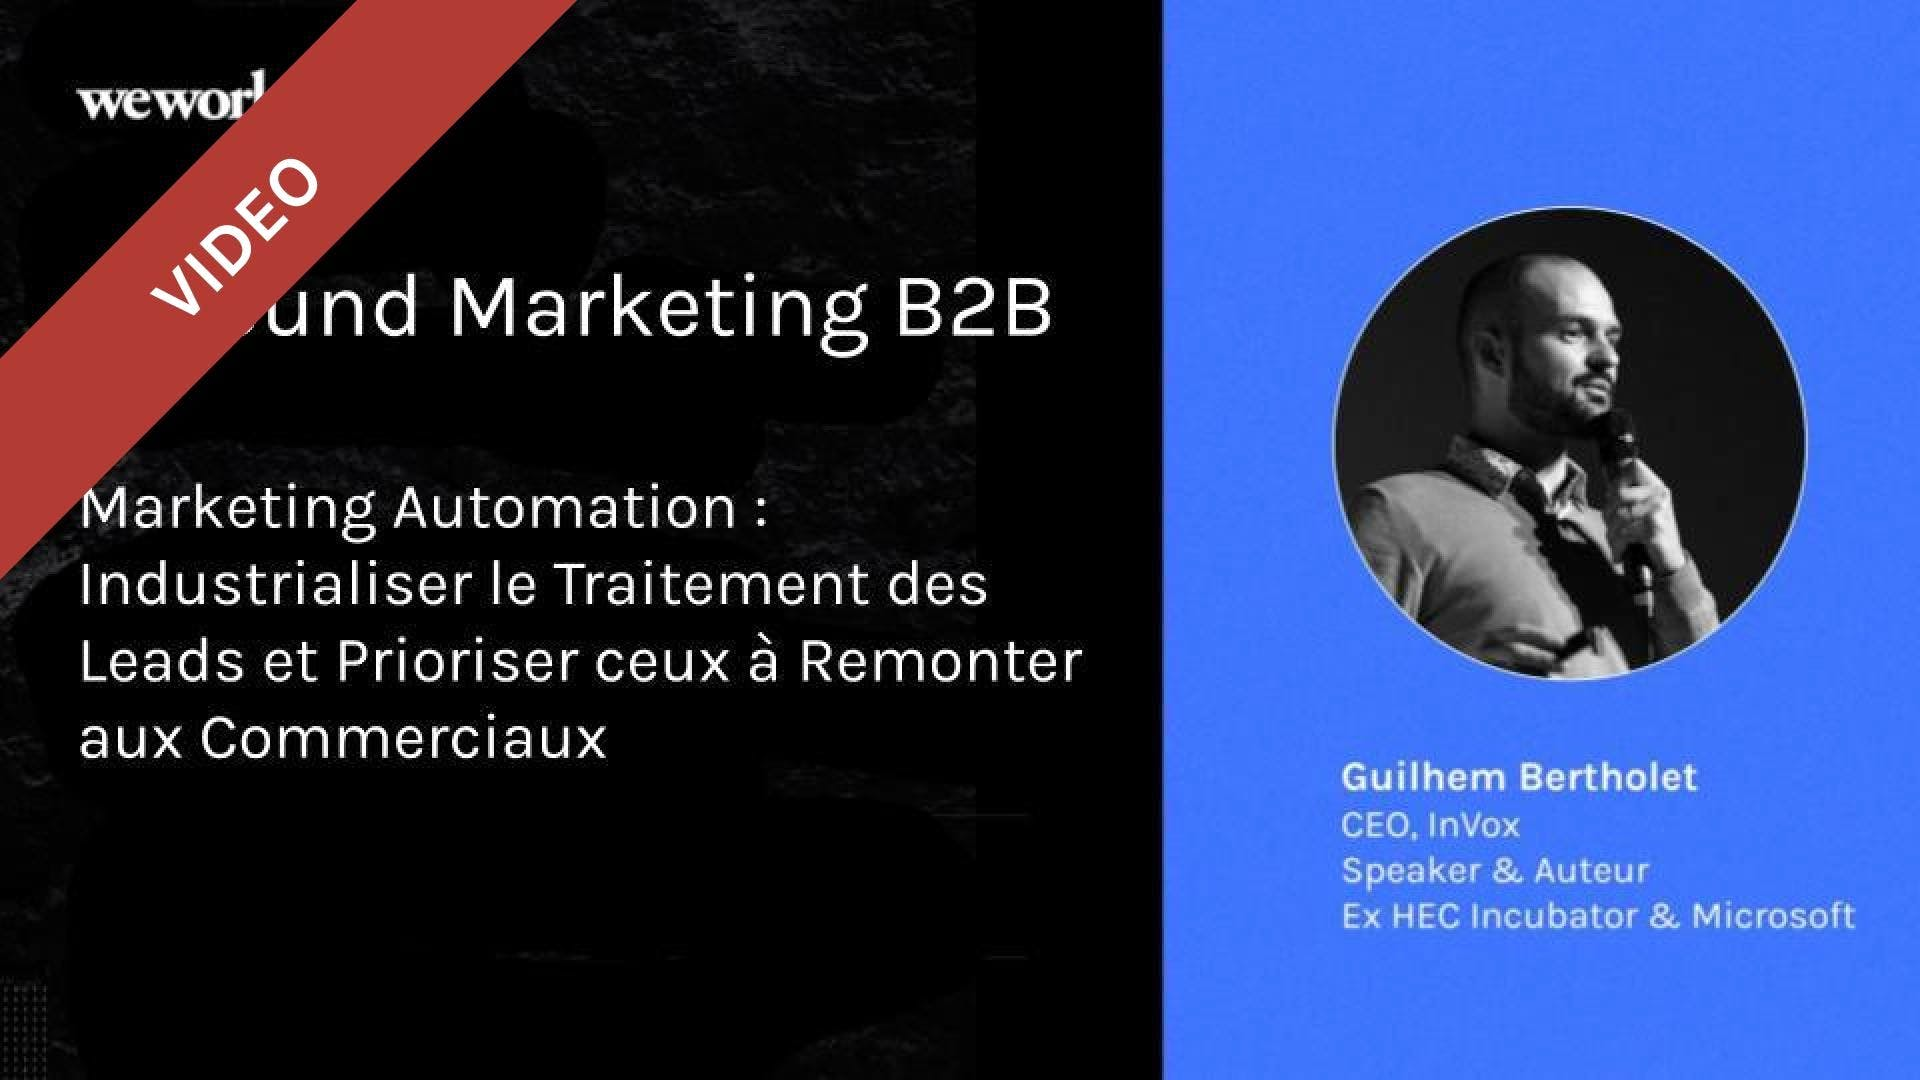 Inbound Marketing B2B - Marketing Automation : Industrialiser le Traitement des Leads et Prioriser ceux à Remonter aux Commerciaux